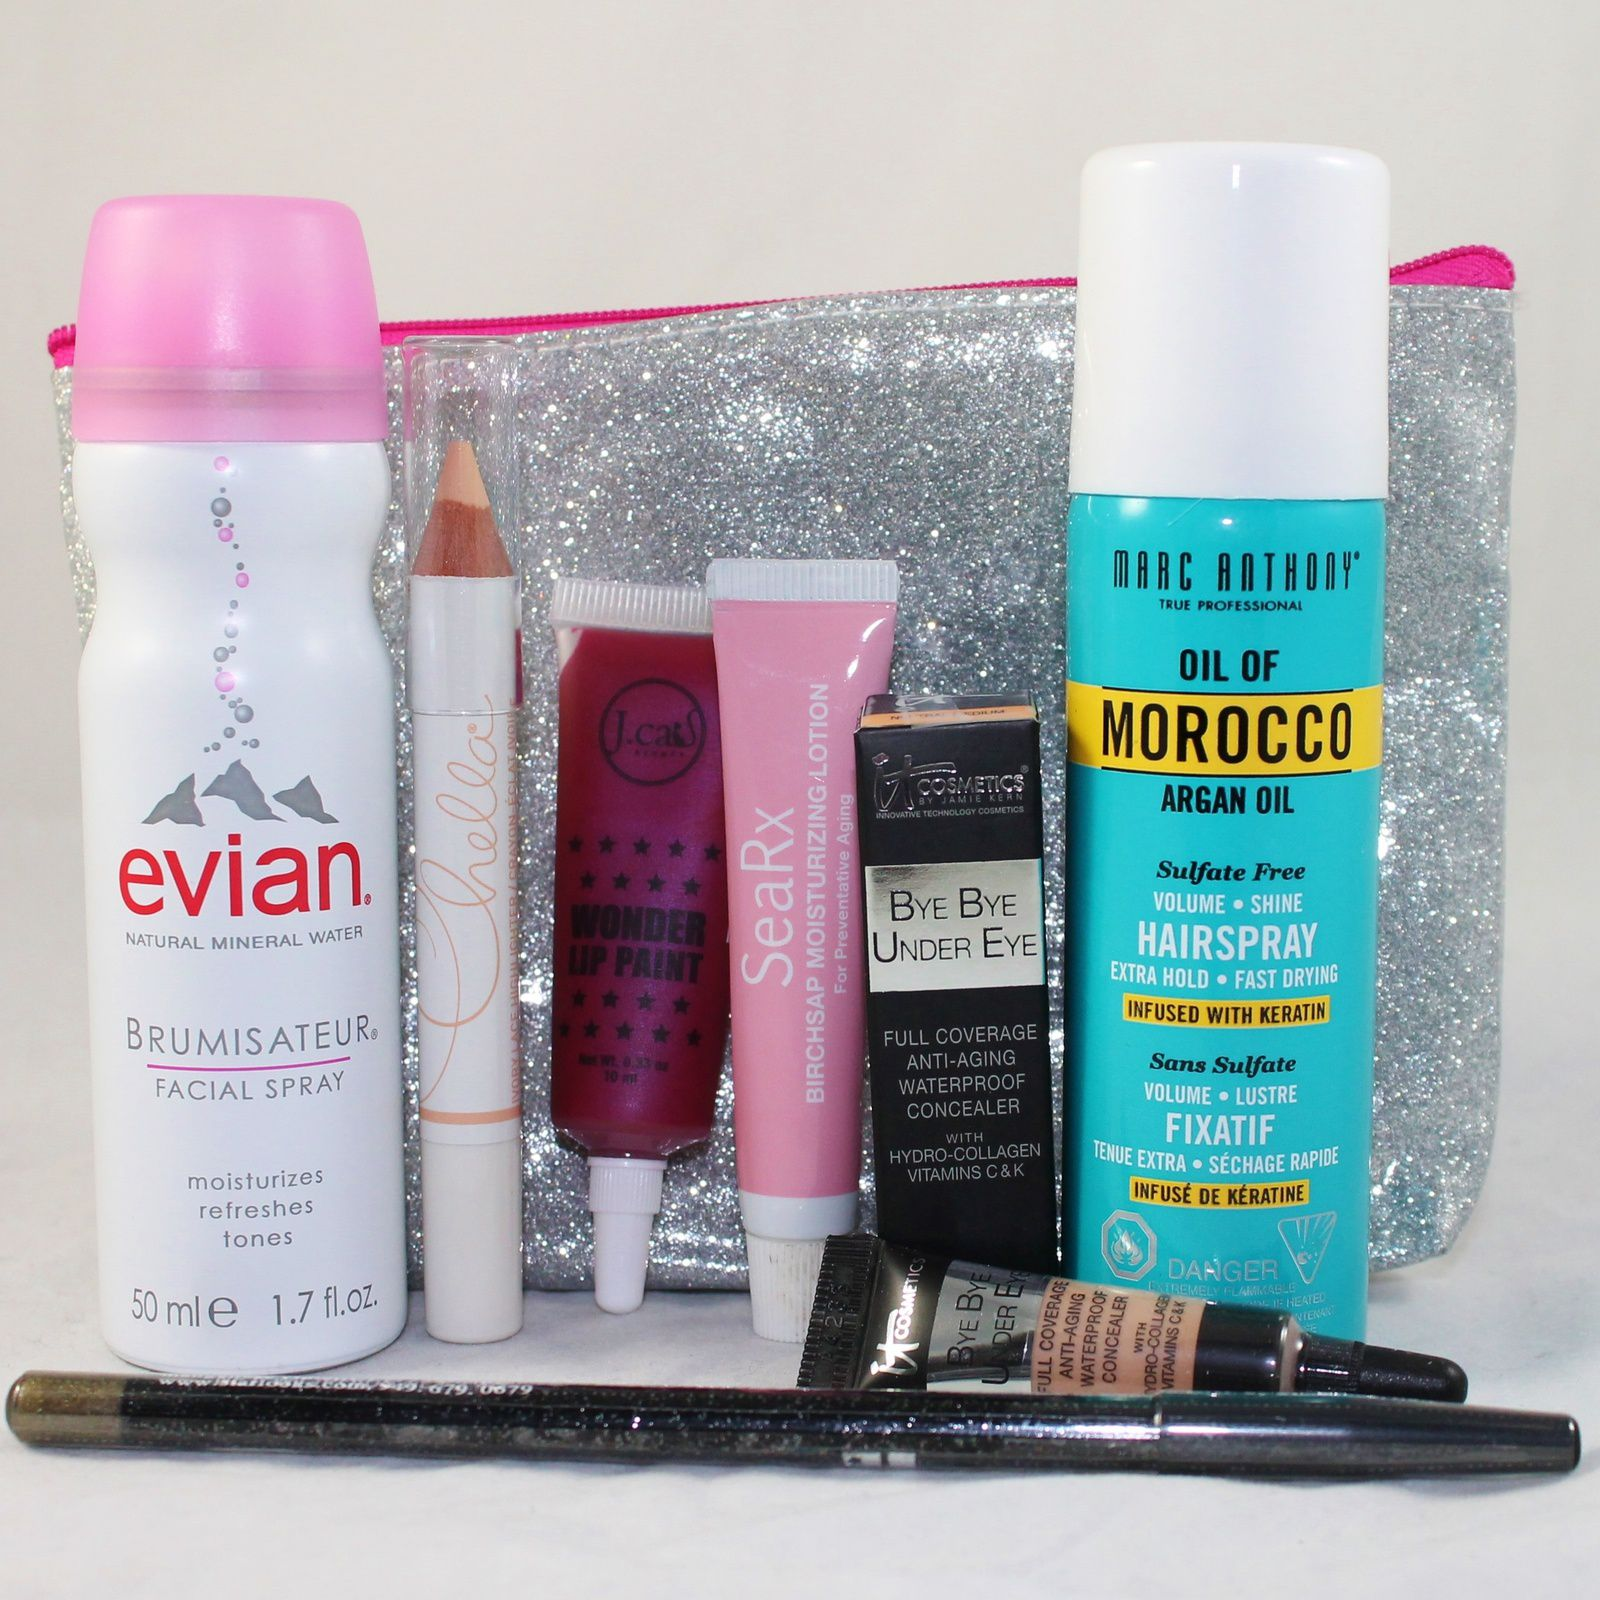 (Evian Brumisateur Mineral Water Facial Spray & Chella Ivory Lace Highlighter Pencil) SeaRx Birch Sap Moisturizing Lotion, IT Cosmetics Bye Bye Under Eye® in Neutral medium, J. Cat Beauty Wonder Lip Paint in Mad Splatter, Marc Anthony Oil of Morocco Argan Oil Volume Shine Hairspray & Starlooks Gem Eye Pencil in Ultra Olive